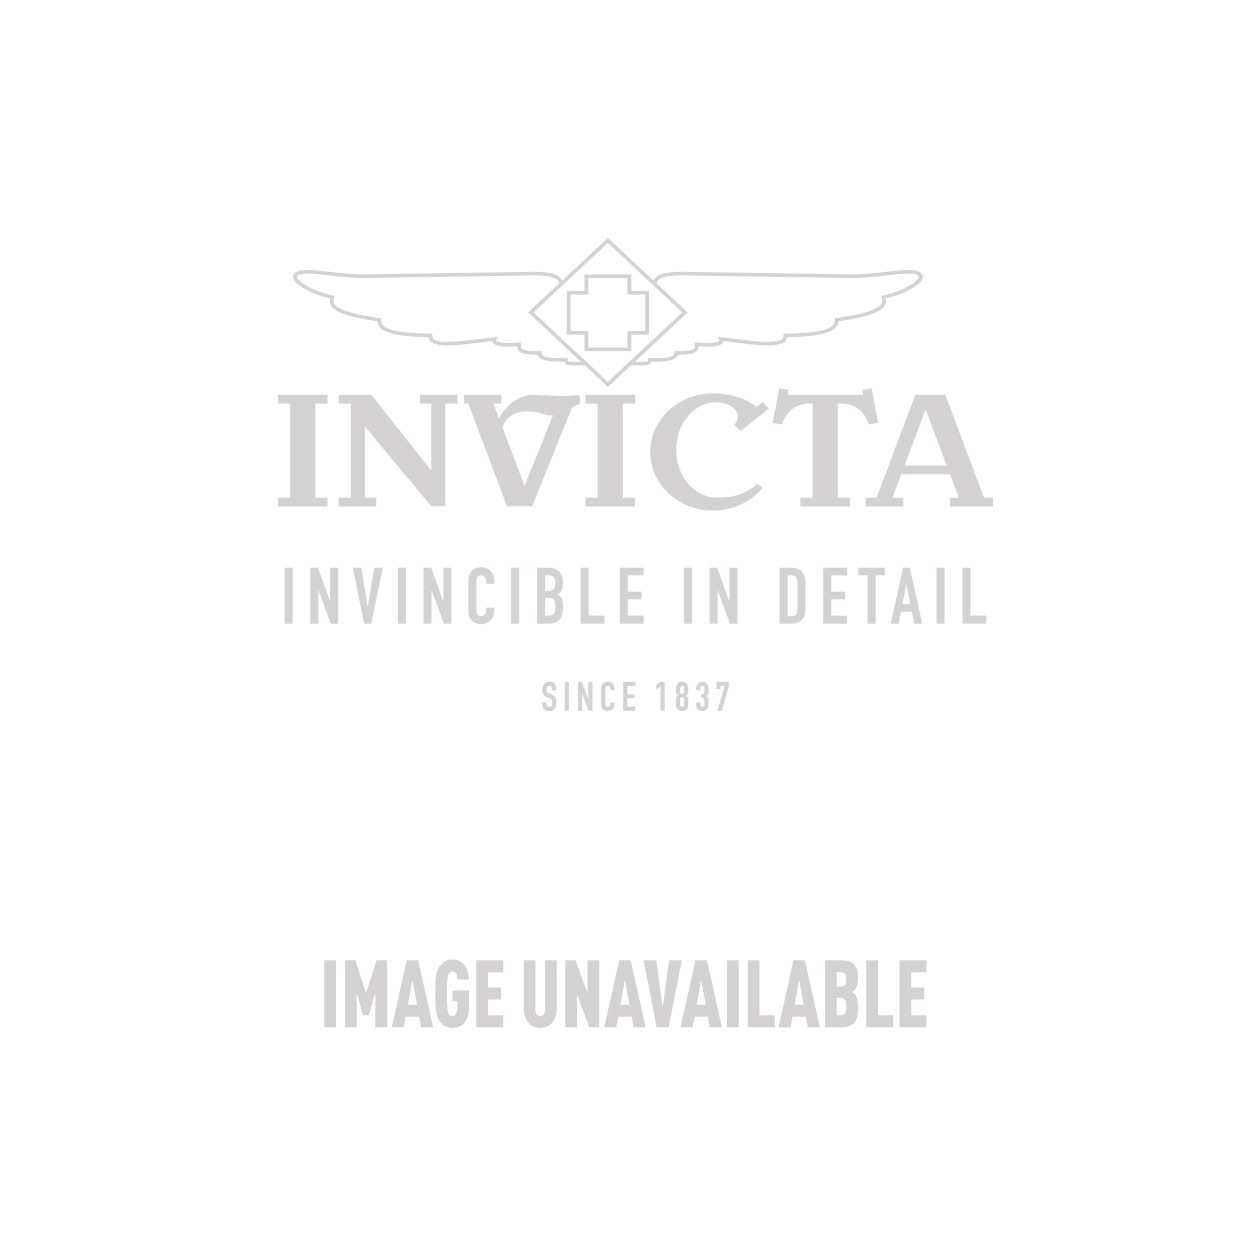 Invicta Bolt Swiss Made Quartz Watch - Gold, Stainless Steel case Stainless Steel band - Model 21355